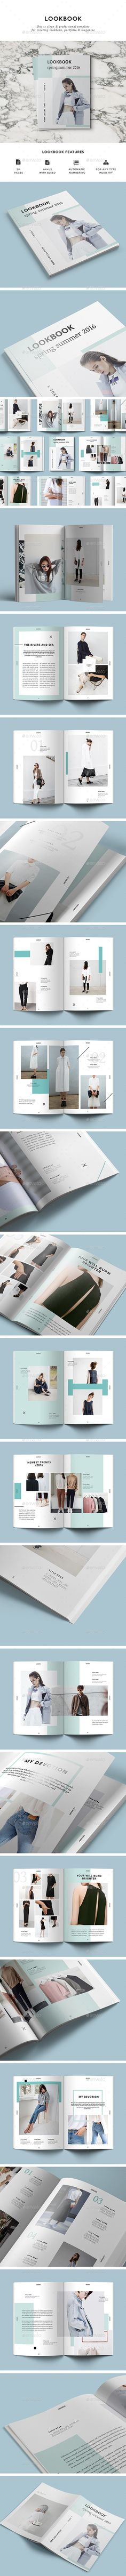 28 Unique Pages LookBook Template InDesign INDD. Download here: http://graphicriver.net/item/lookbook/16647729?ref=ksioks